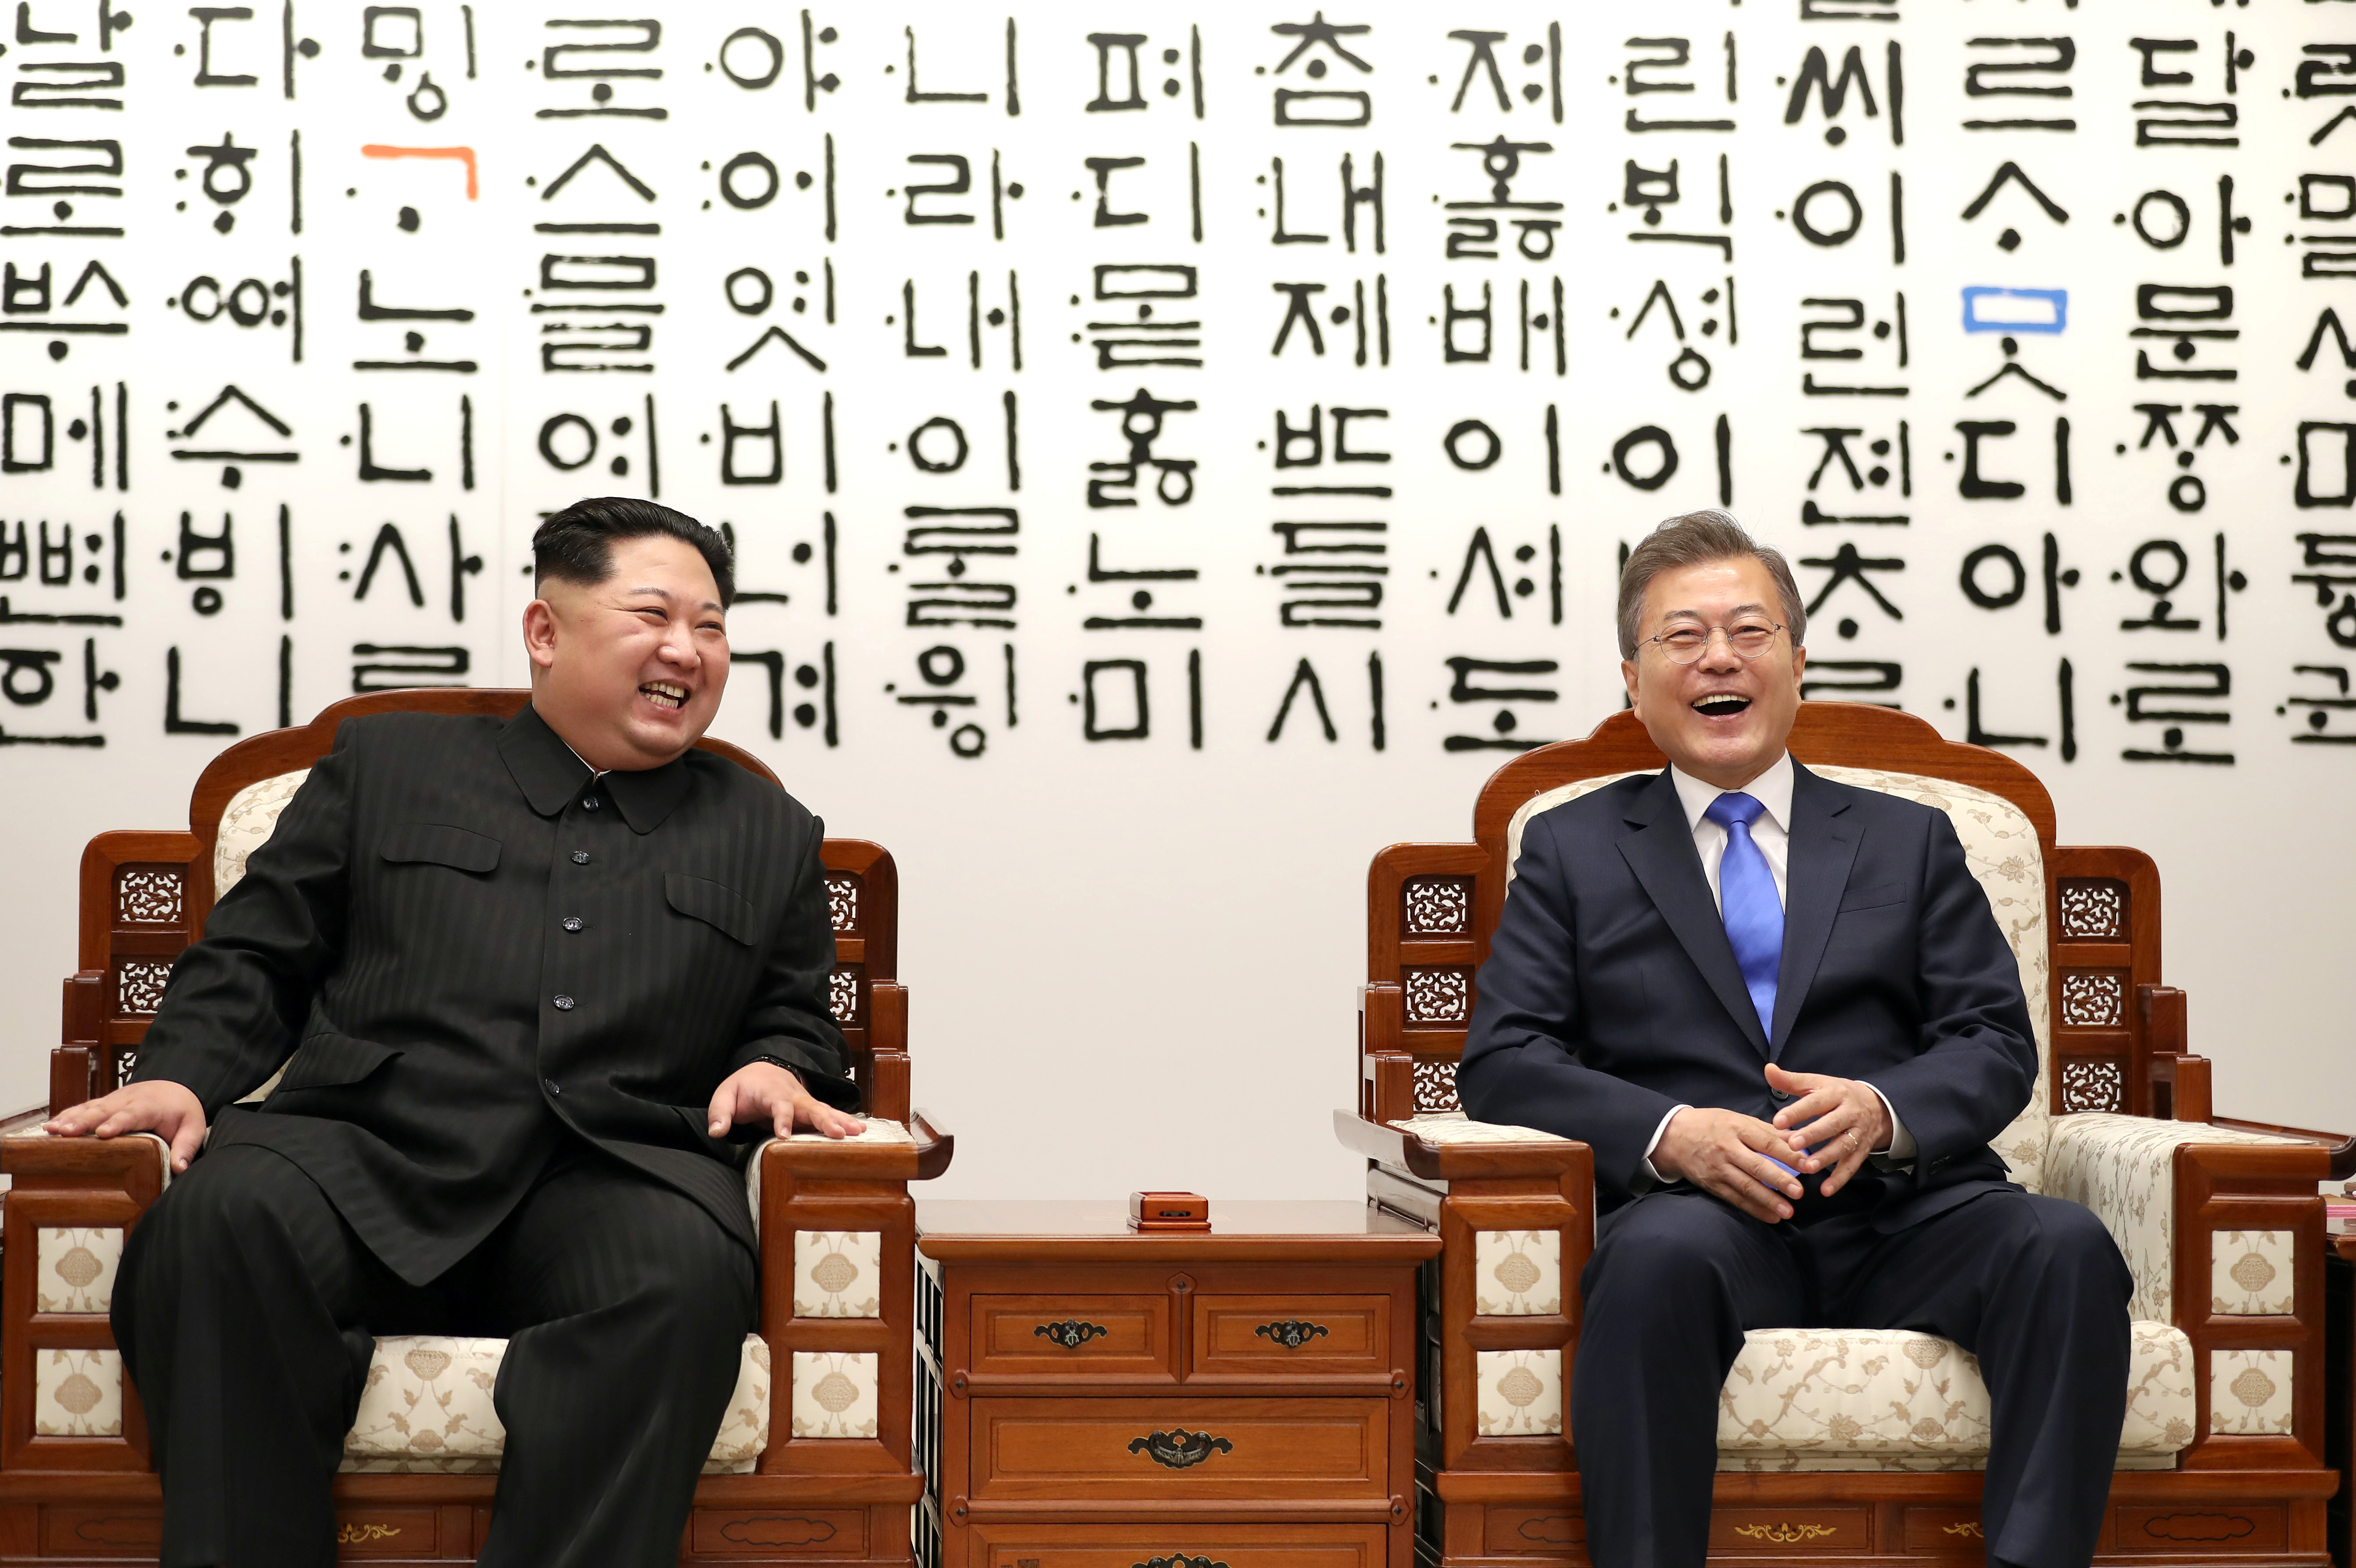 South Korean President Moon Jae-in talks with North Korean leader Kim Jong Un during their meeting at the Peace House at the truce village of Panmunjom inside the demilitarized zone separating the two Koreas, South Korea, April 27, 2018.   Korea Summit Press Pool/Pool via Reuters - RC144879C1C0